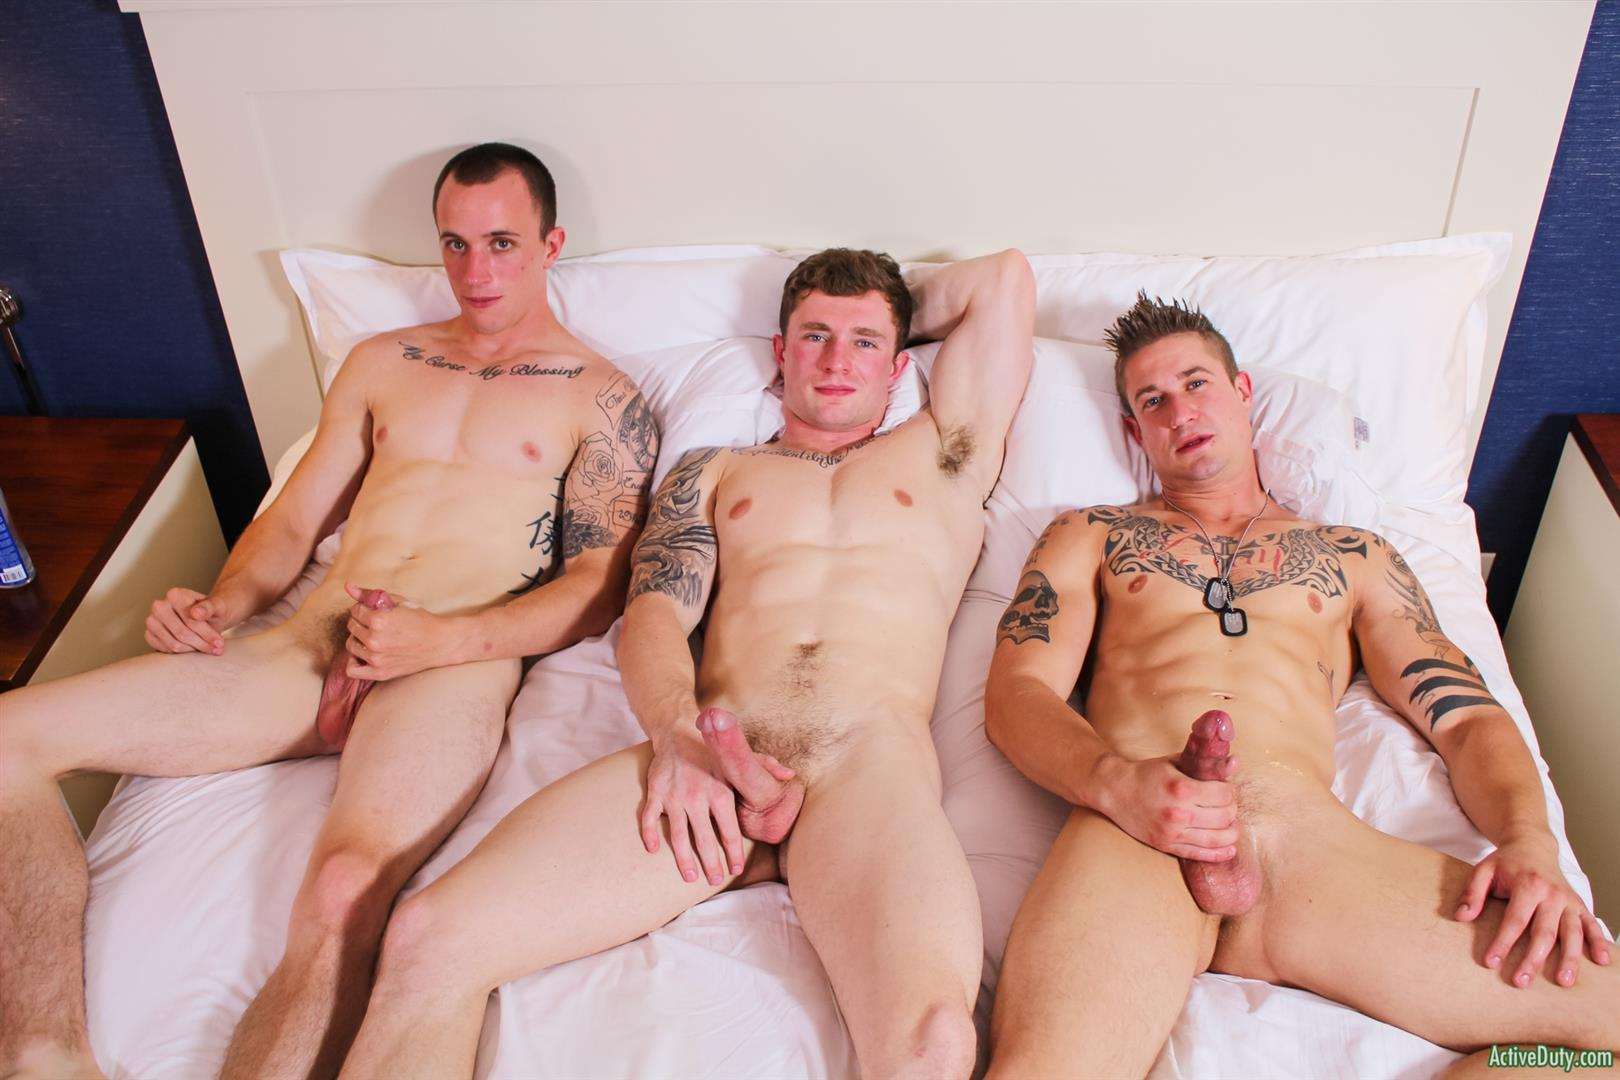 Active Duty Threeway Army Guys Bareback Sex Video Amateur Gay Porn 15